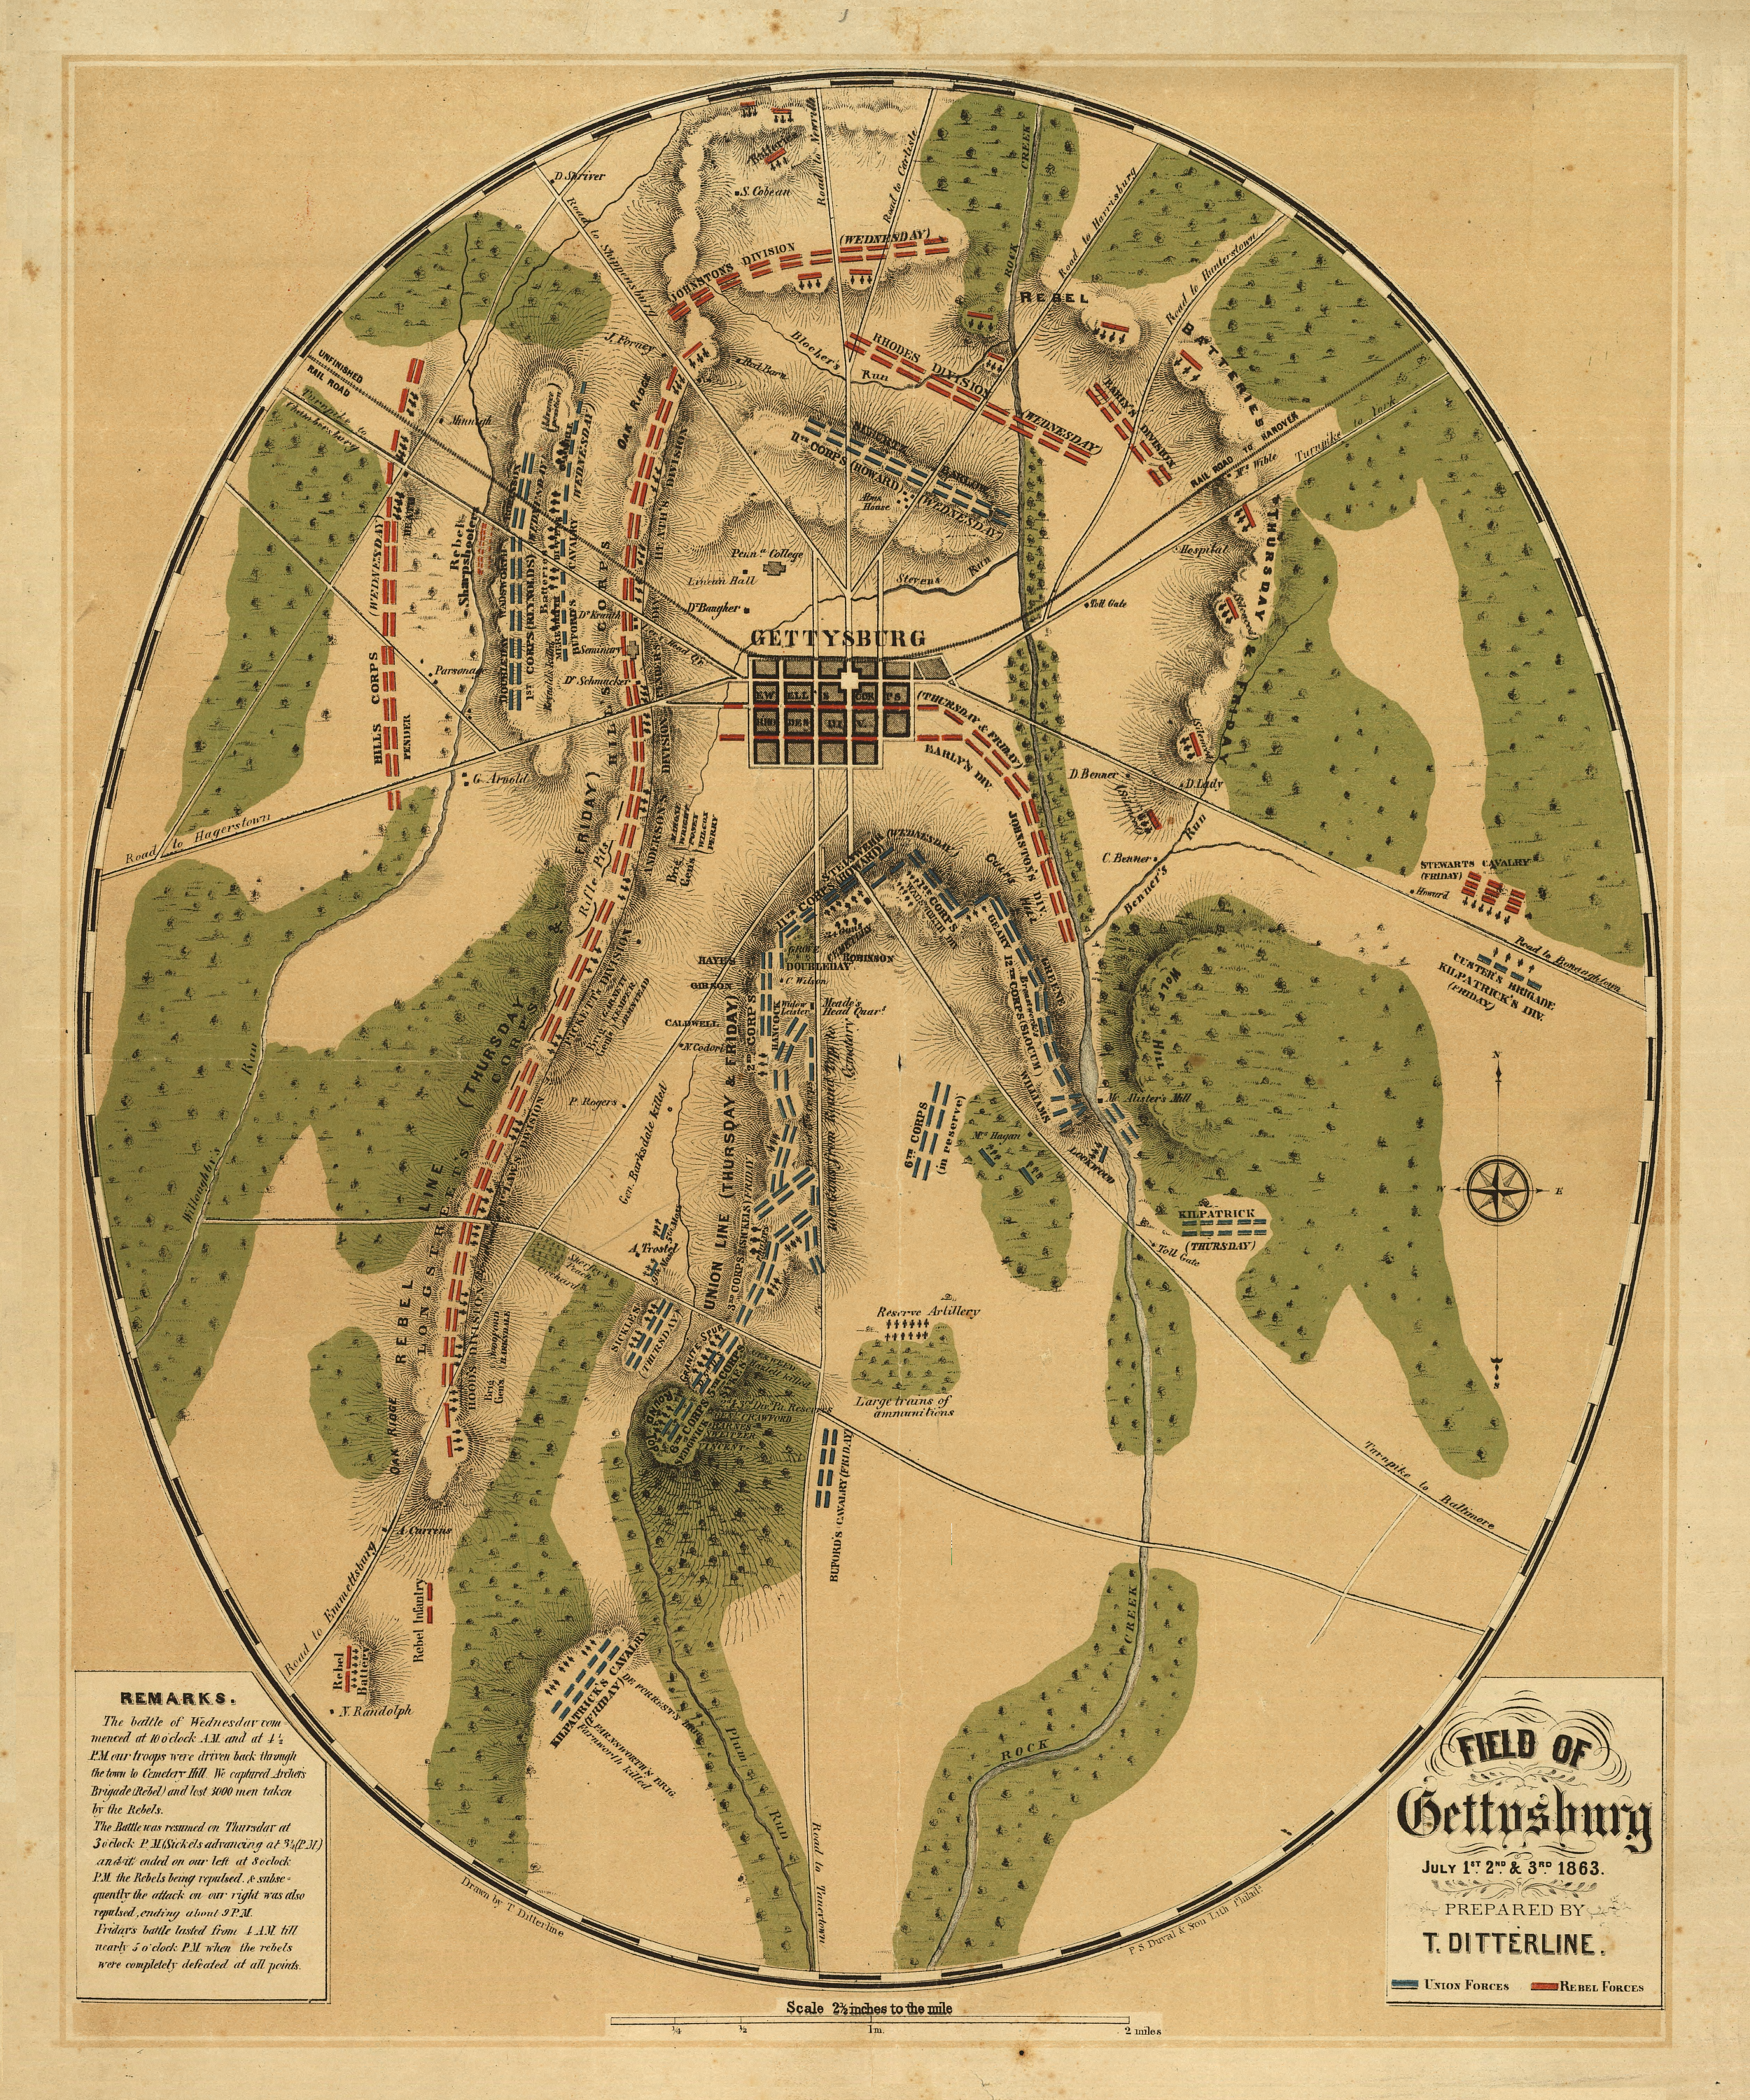 A map of the battlefield of Gettysburg